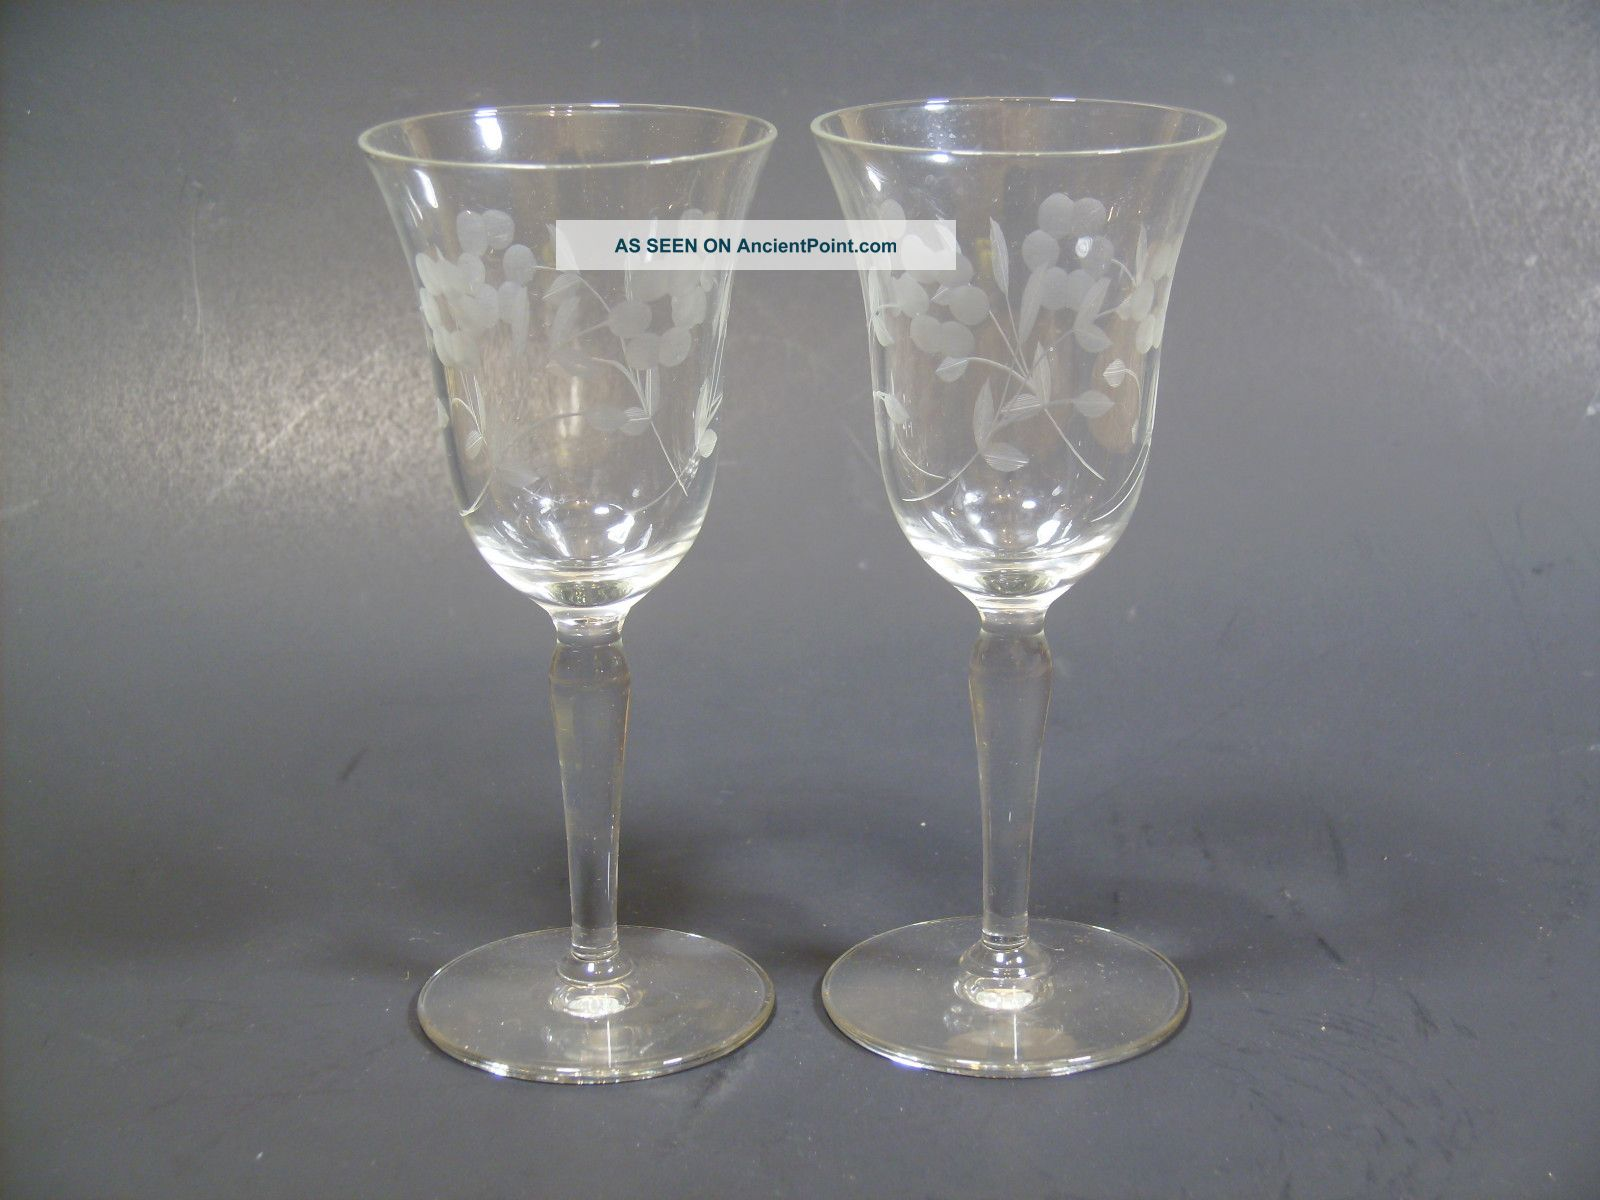 Crystal Stemware Wine Glasses Vintage Crystal Glasses Ordinary Nude Teen Pics